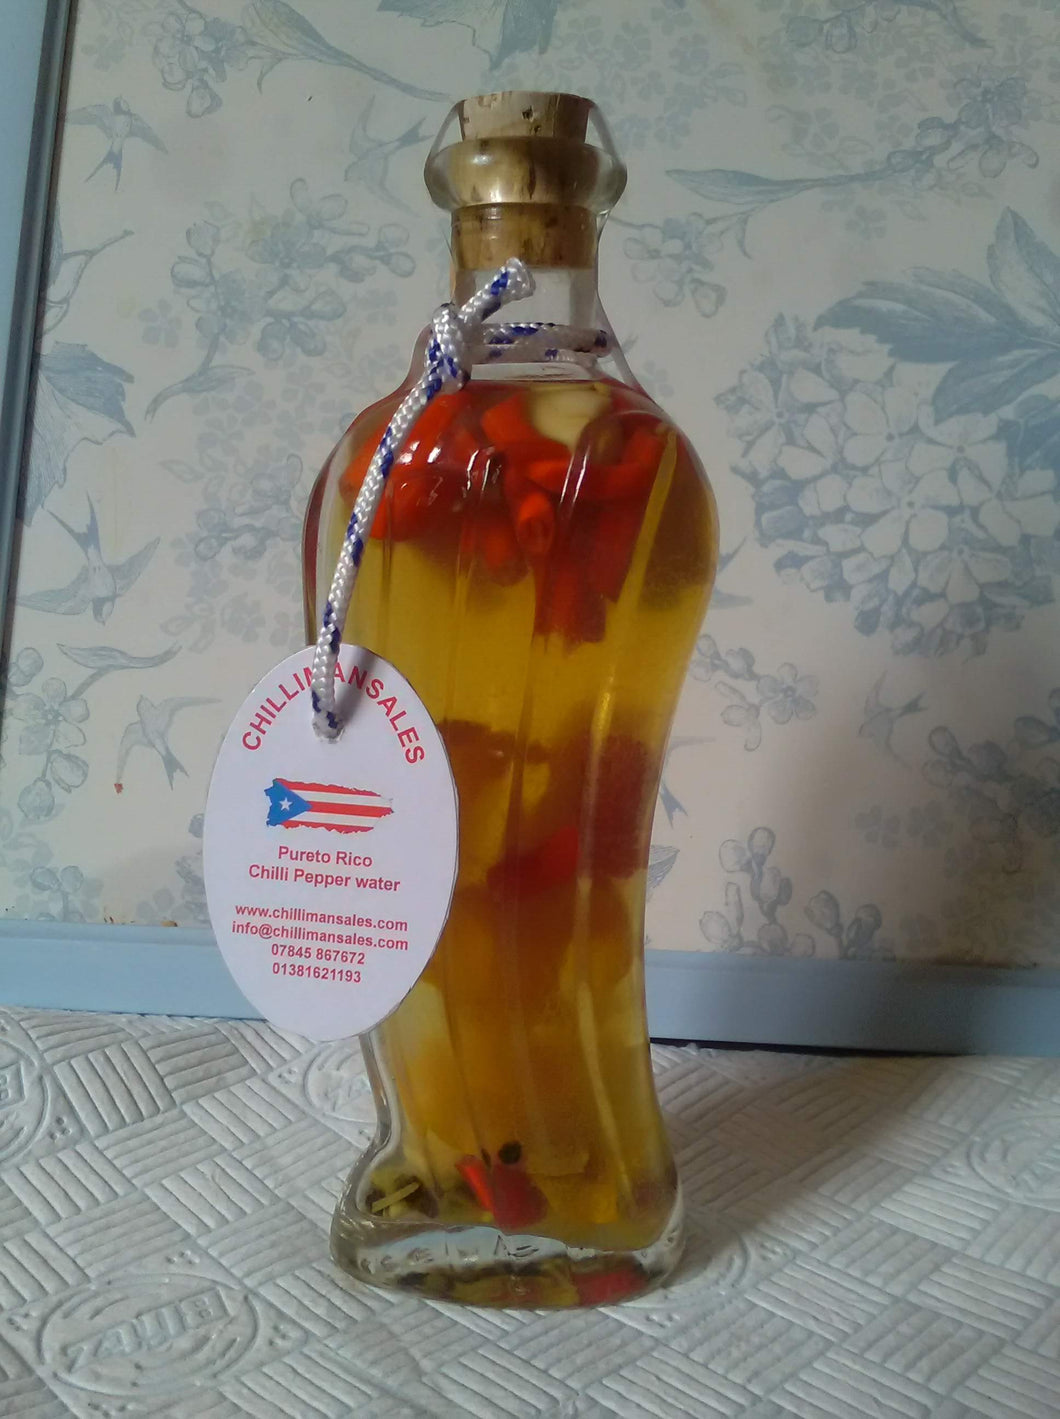 Purteo Rican Chilli Pepper Water